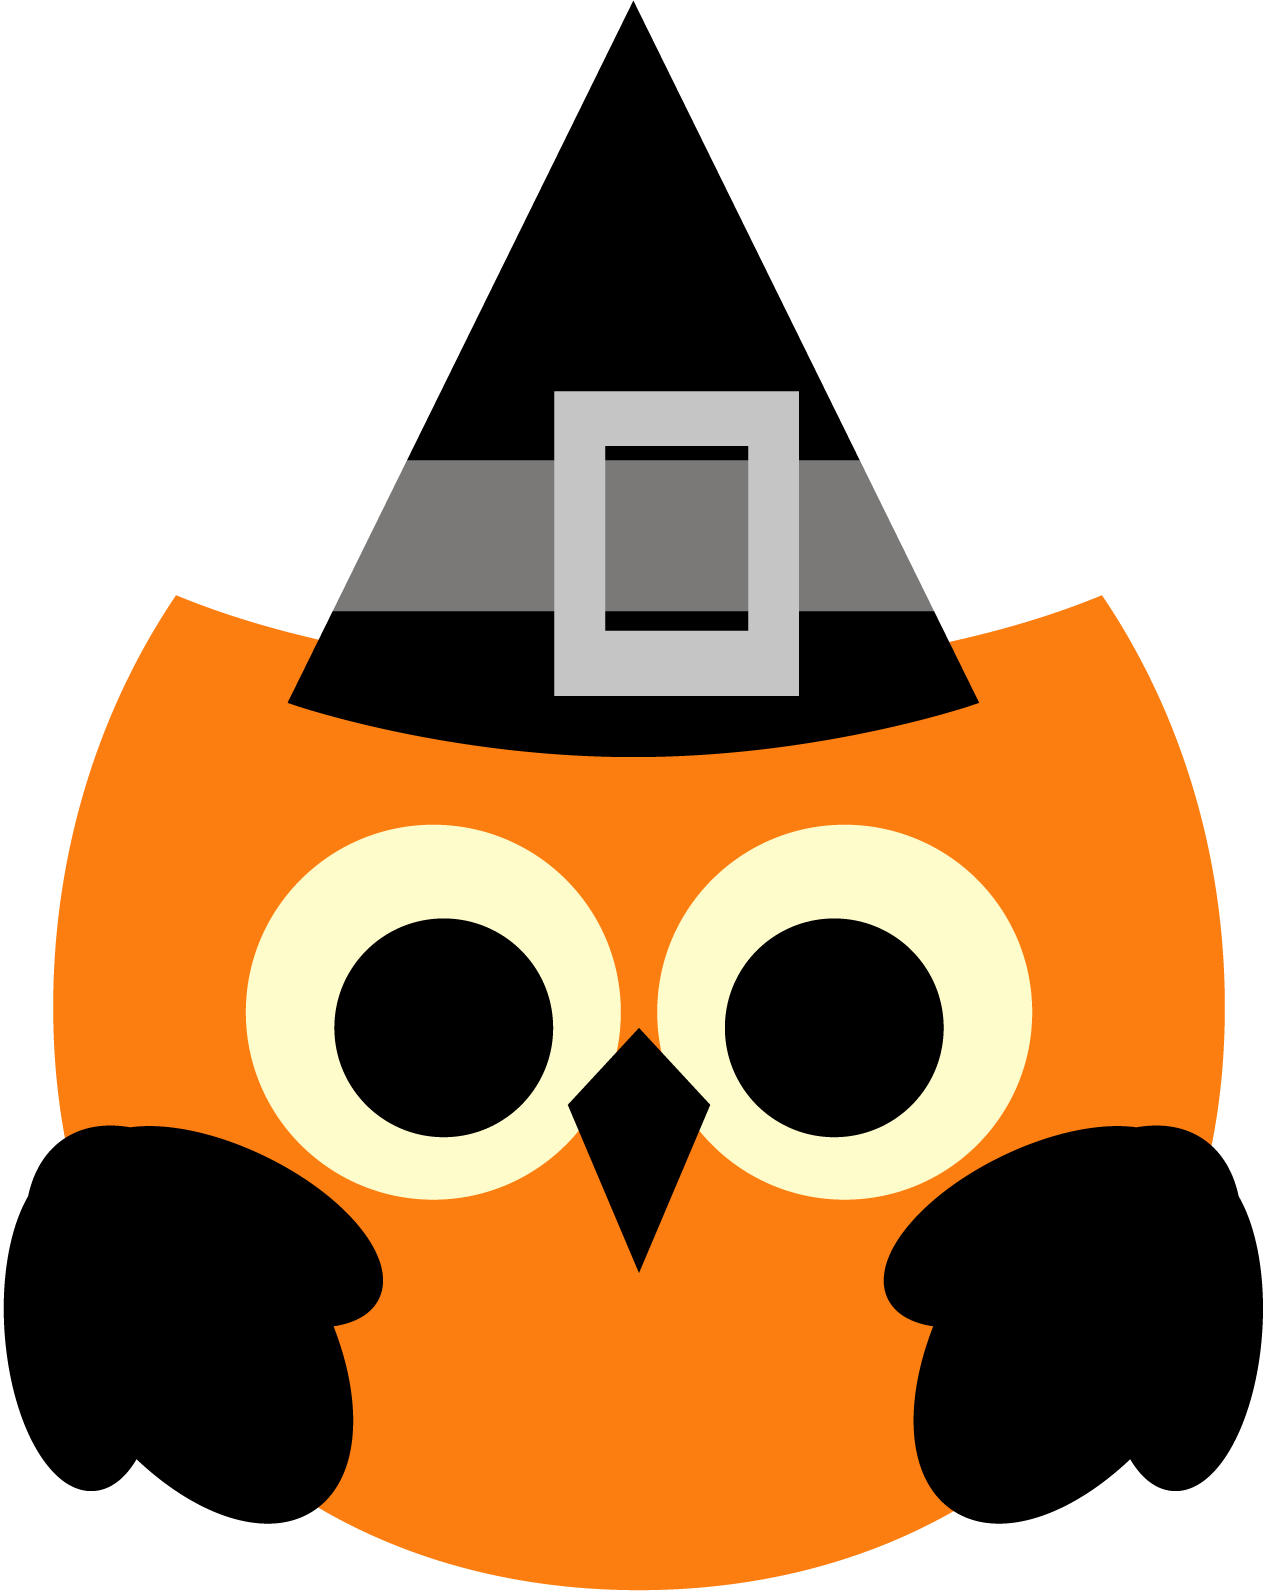 Owl halloween clipart freebie (free clip art graphic) | revidevi.